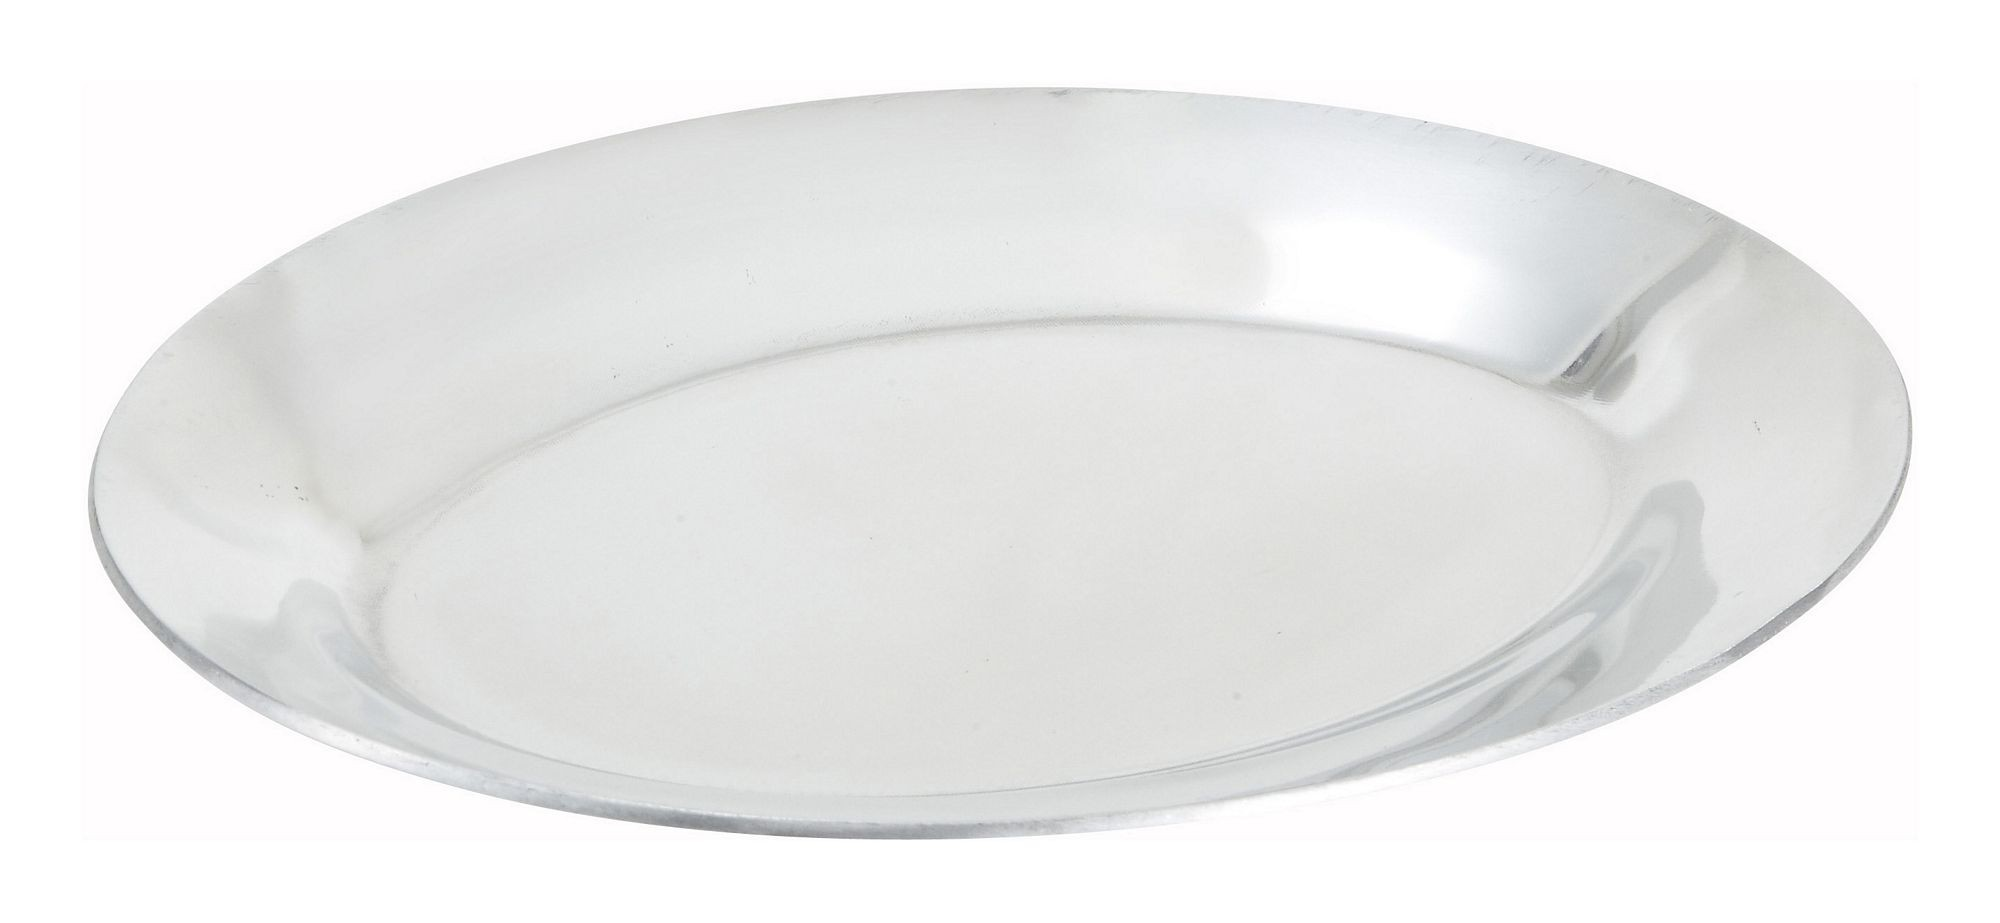 Winco APL-12 Aluminum Oval Sizzling Platter, 12""